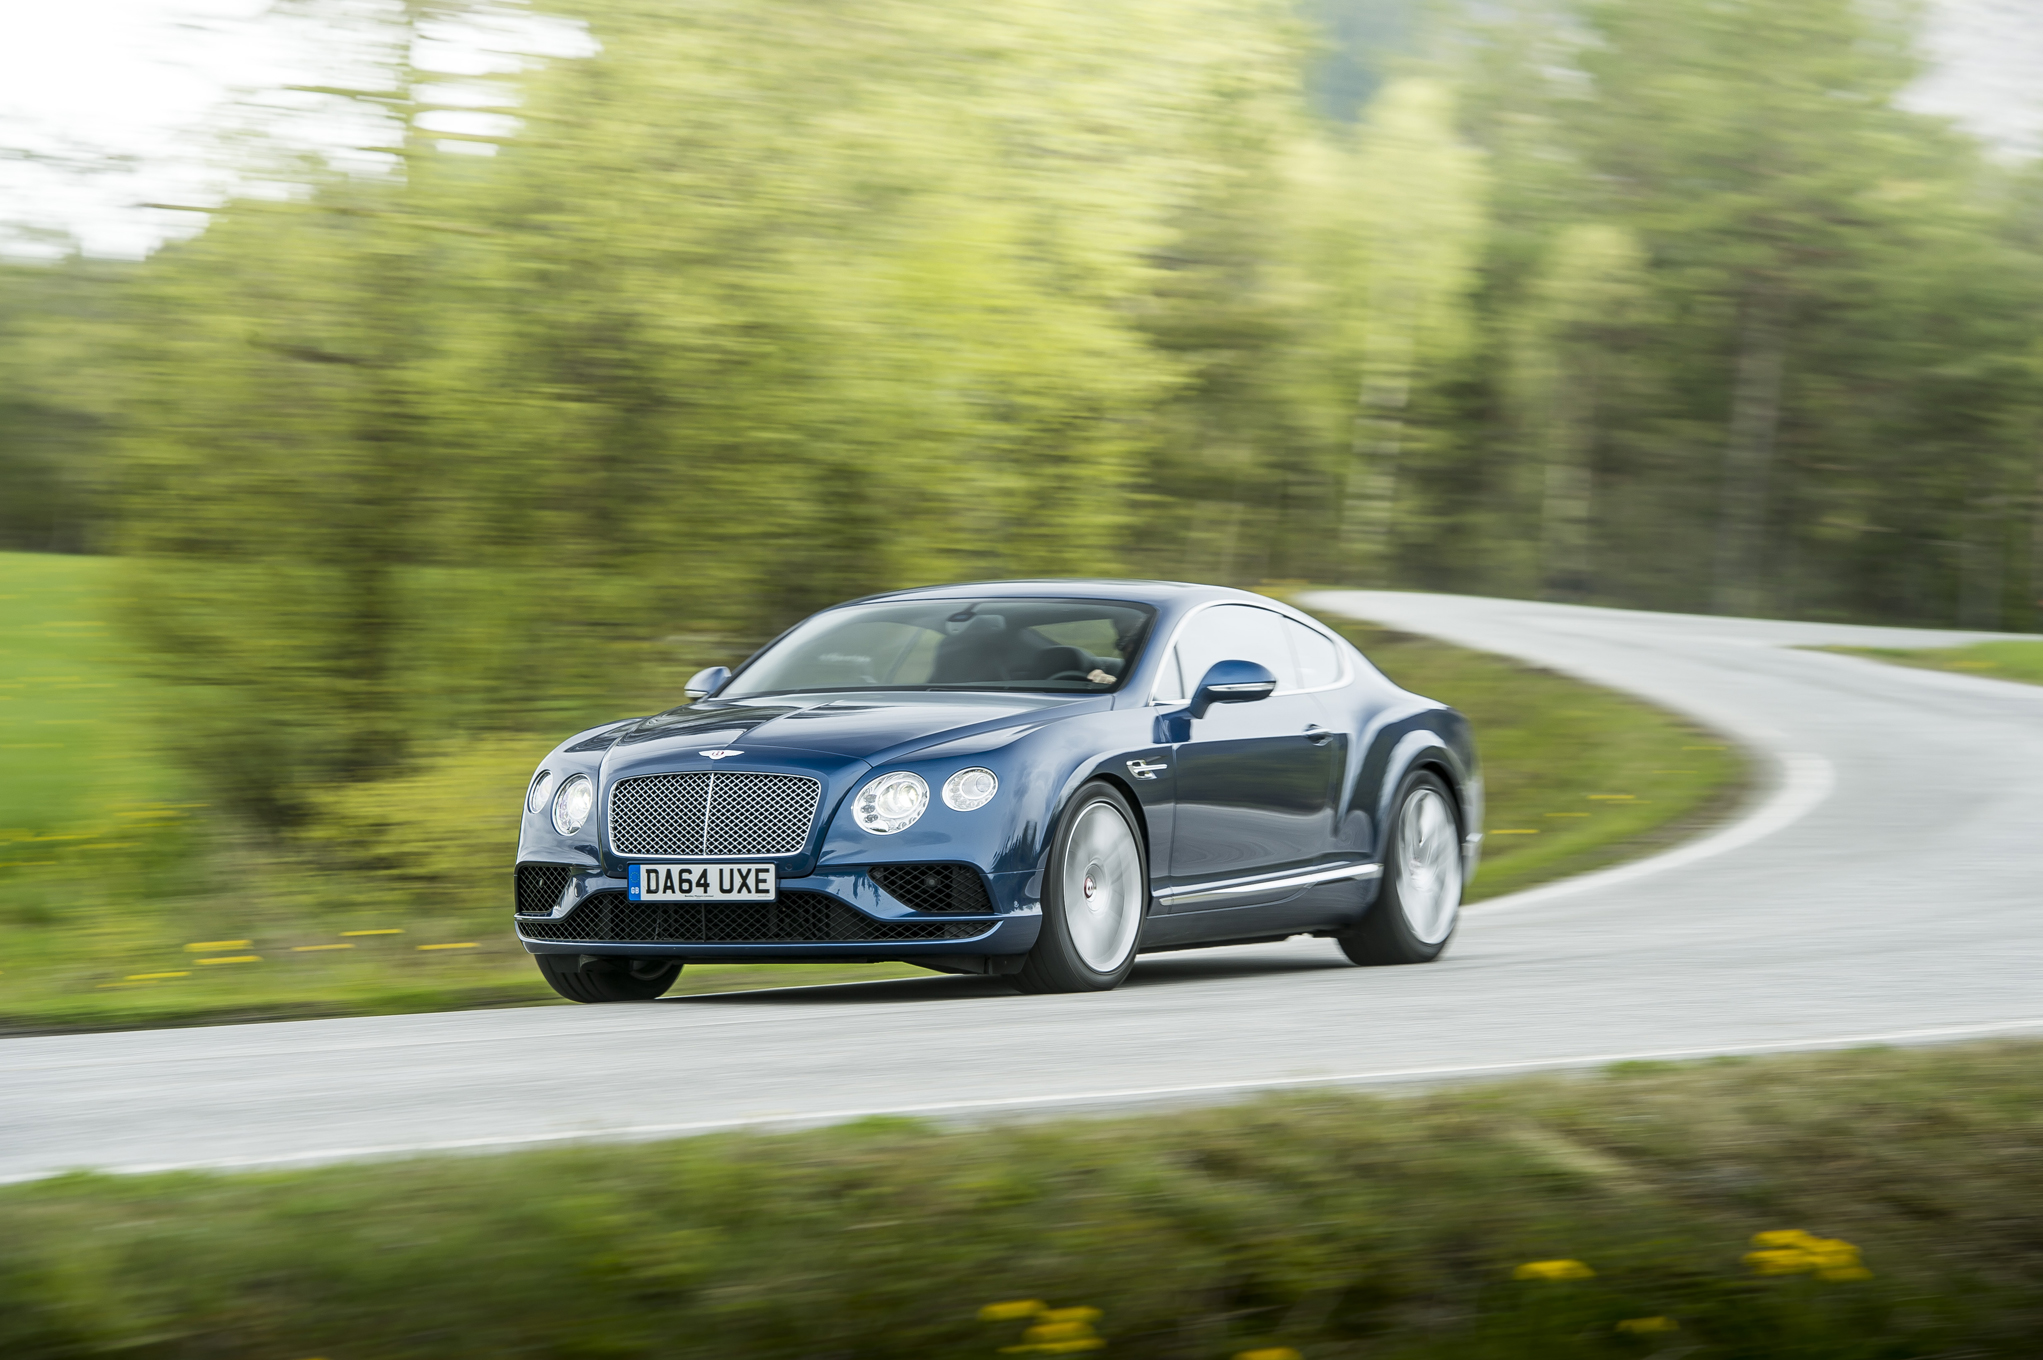 test drive bentley continental gt v8 coupe 2016 8193 cars performance reviews and test drive. Black Bedroom Furniture Sets. Home Design Ideas